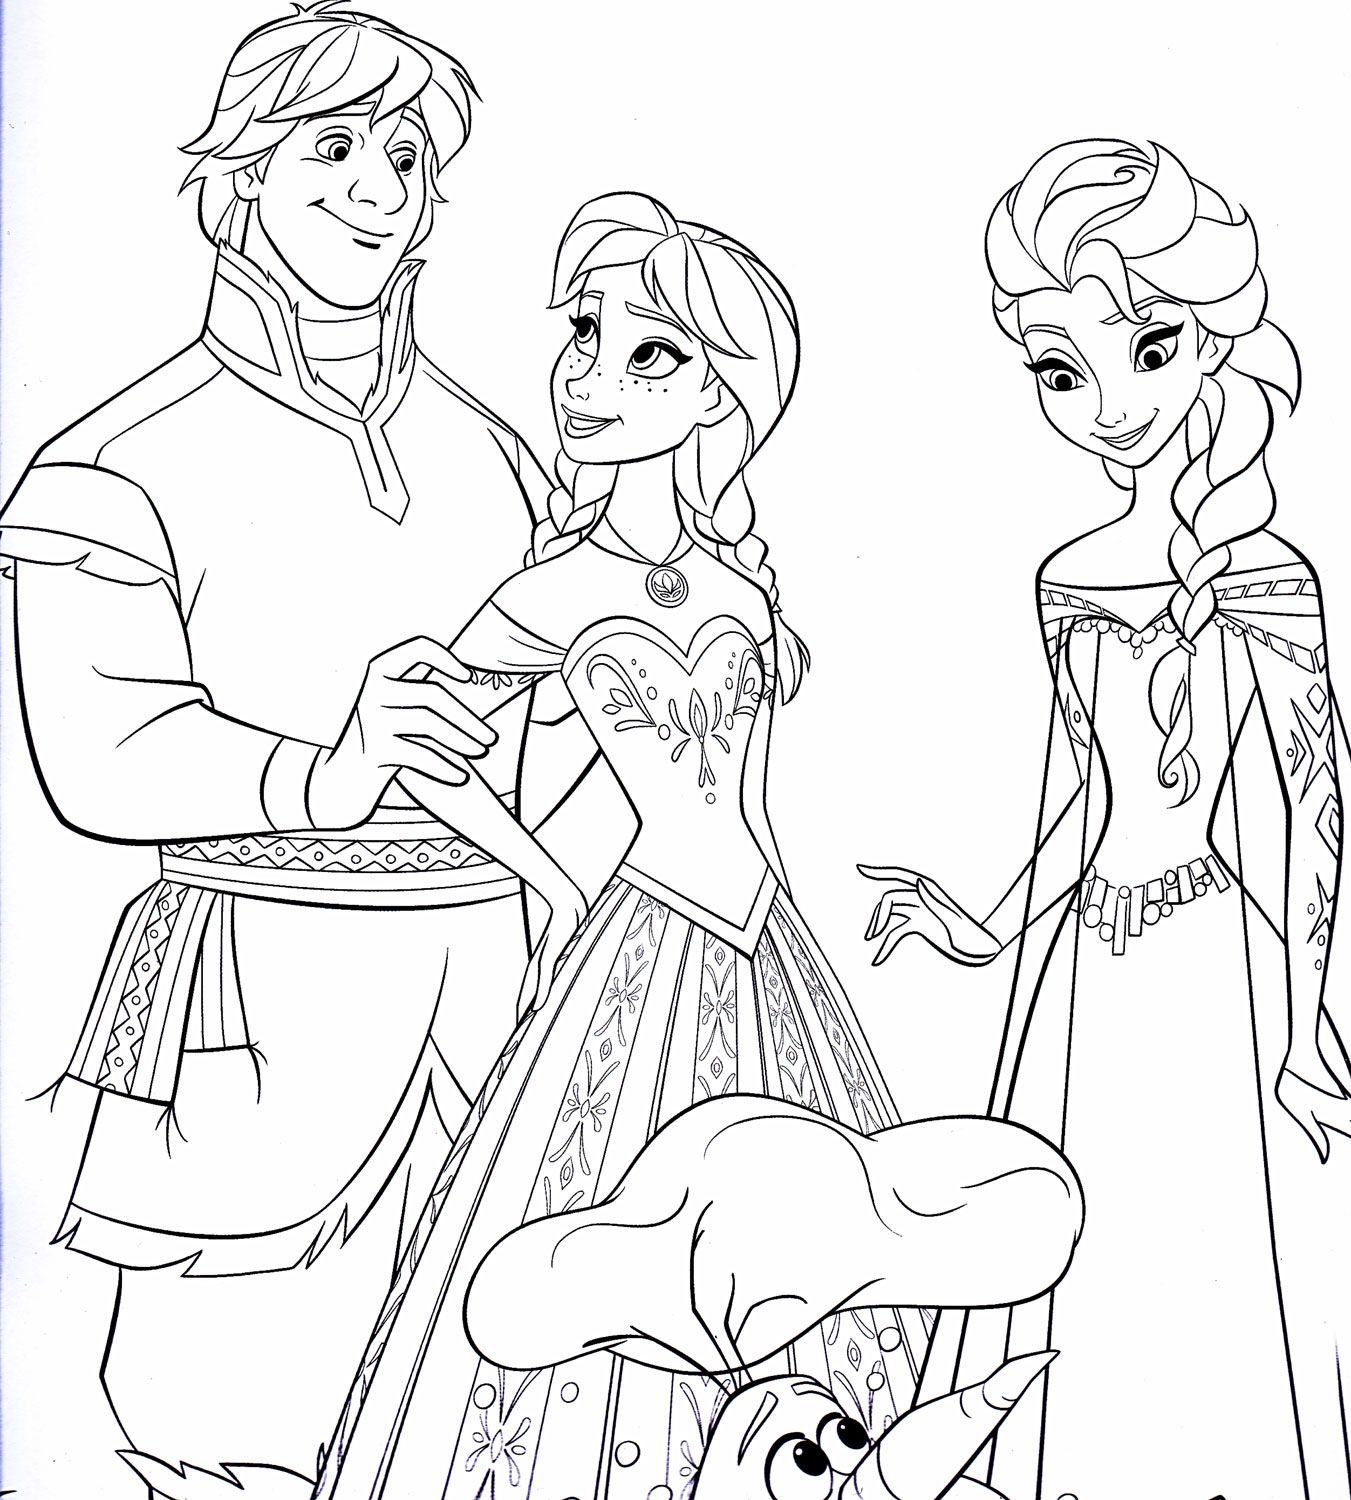 Coloring Pages Frozen - Disney frozen coloring sheets dibujos para colorear de frozen y el reino del hielo